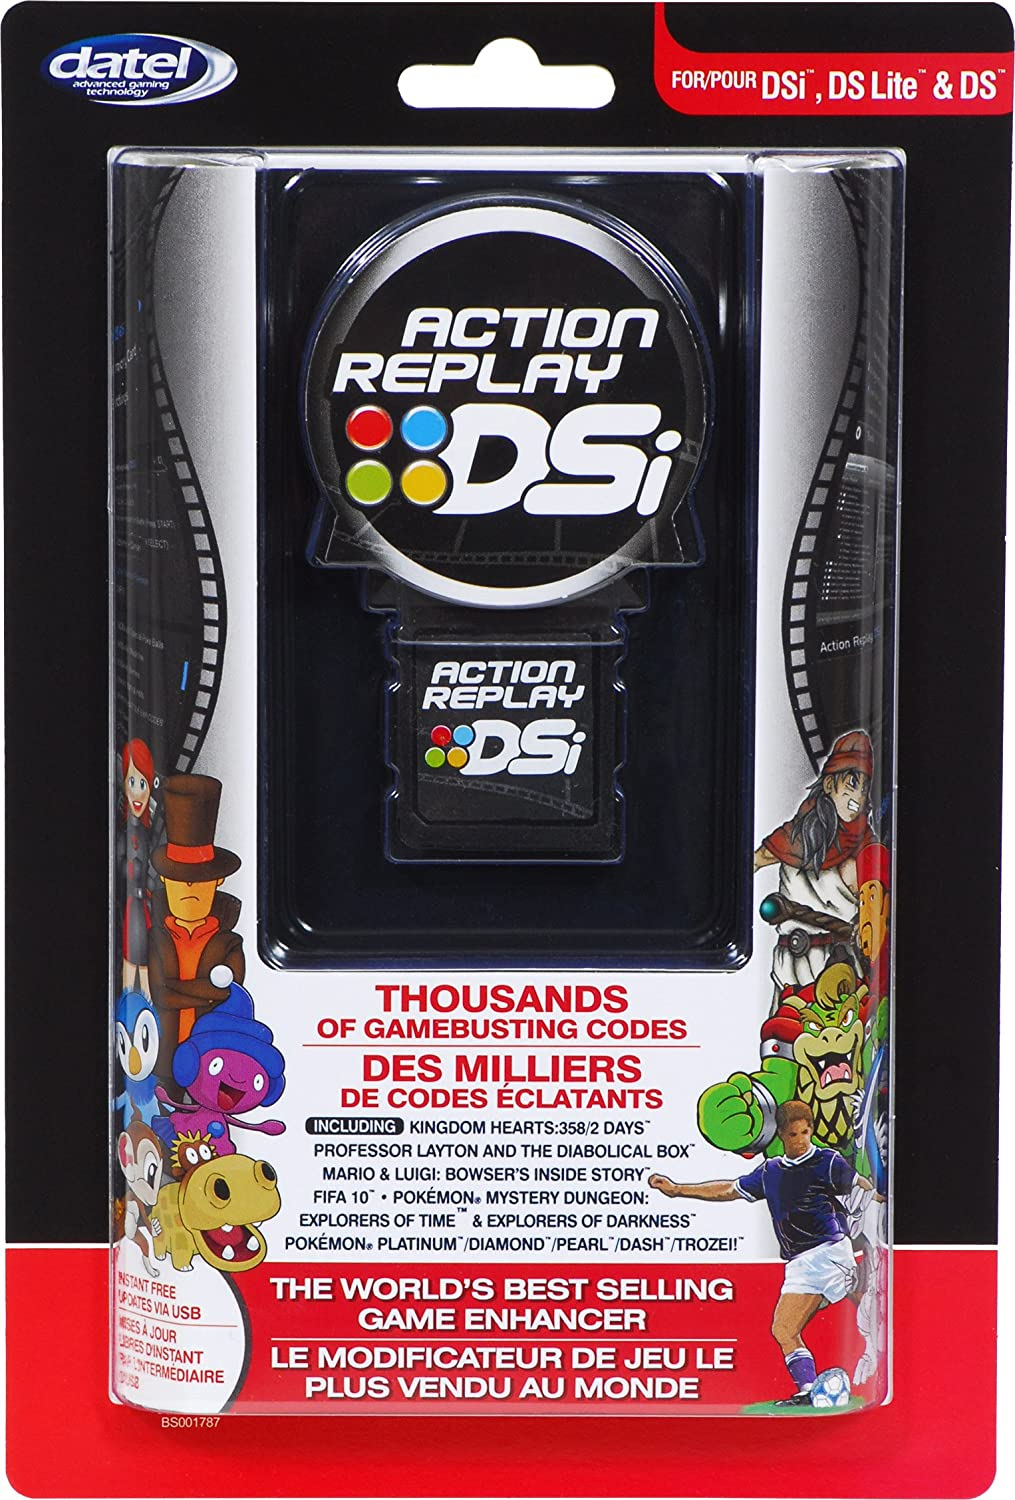 how do you add new codes to action replay dsi